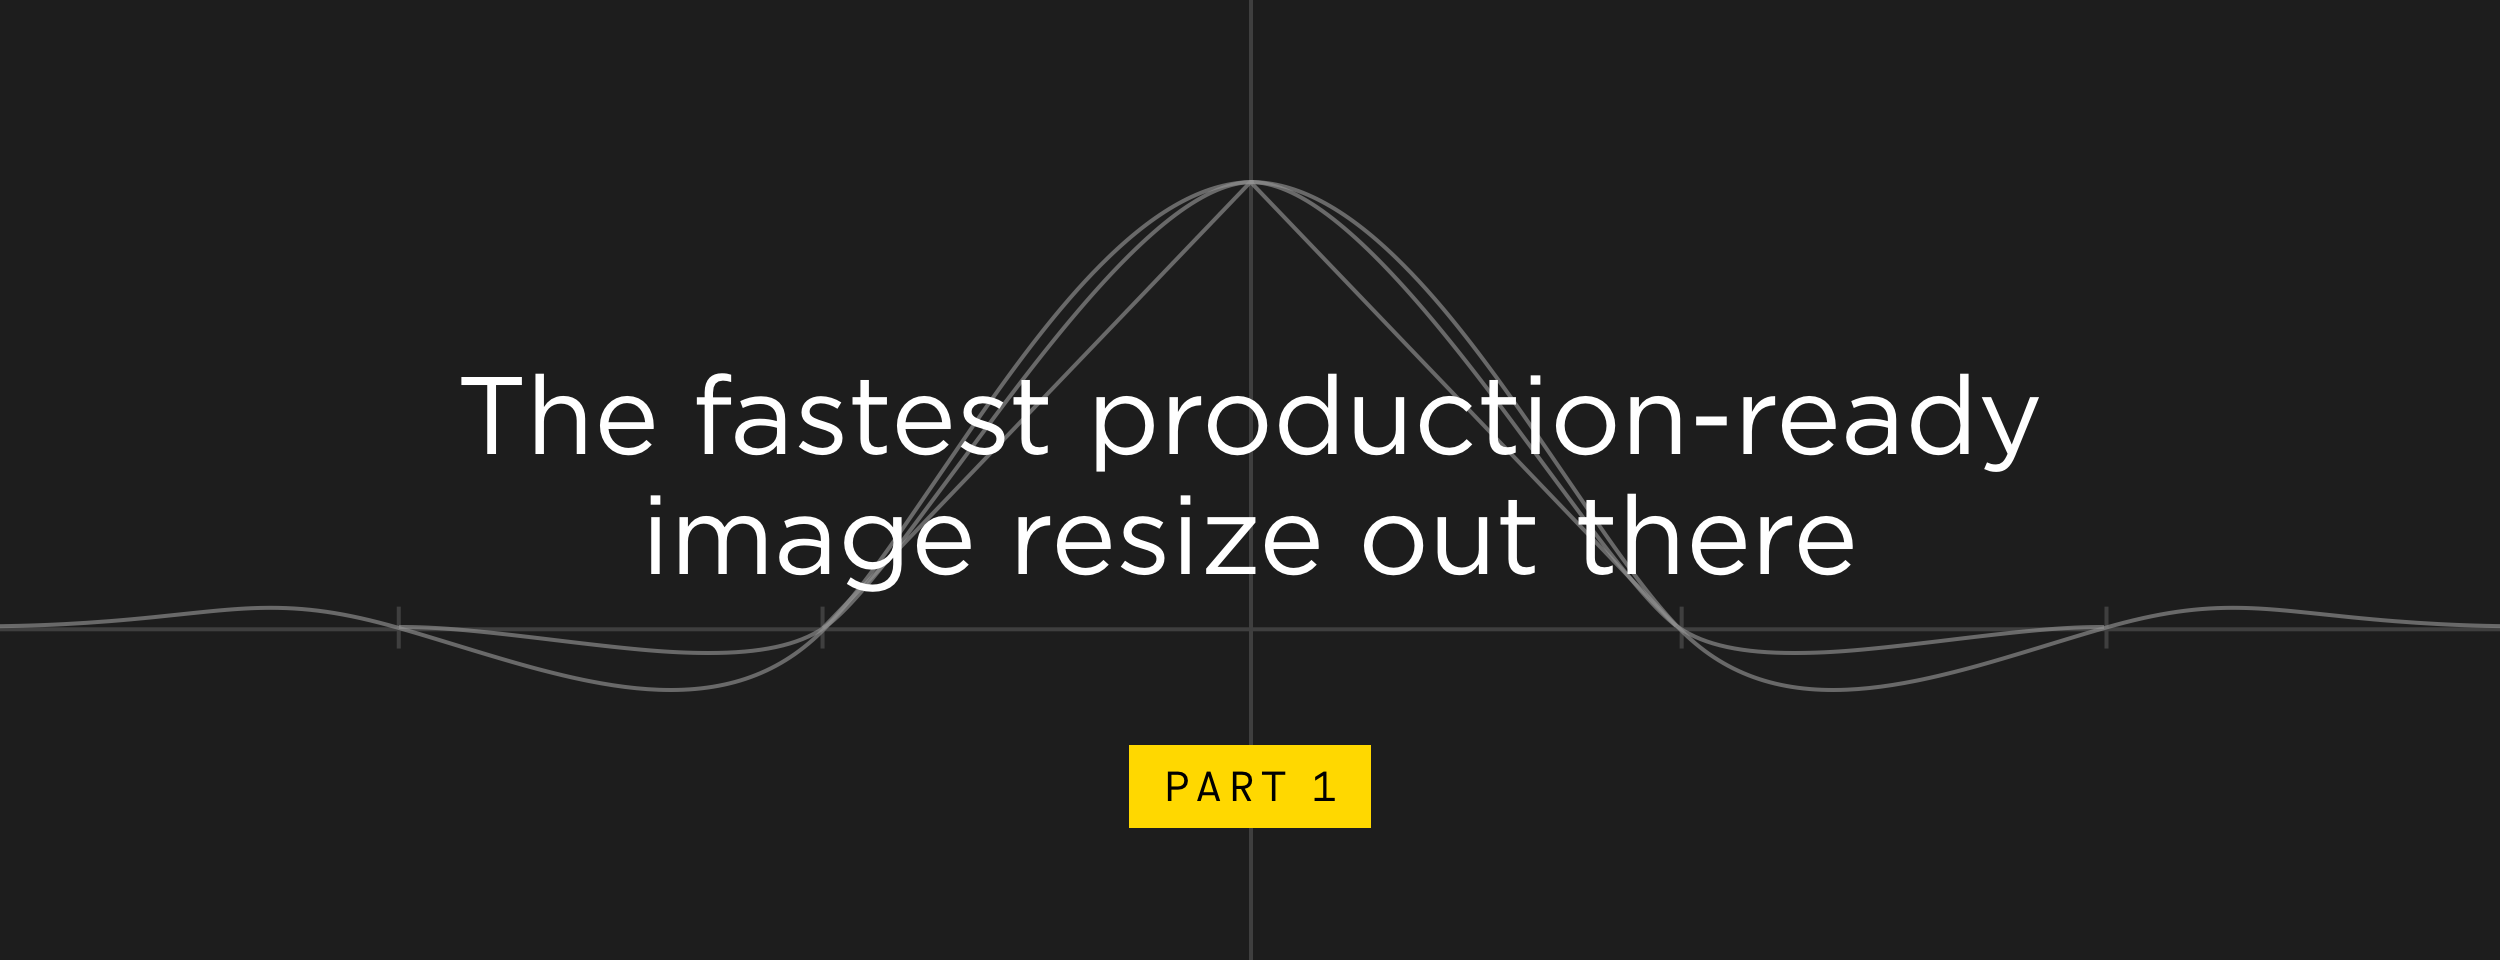 The fastest production-ready image resize out there, part 1